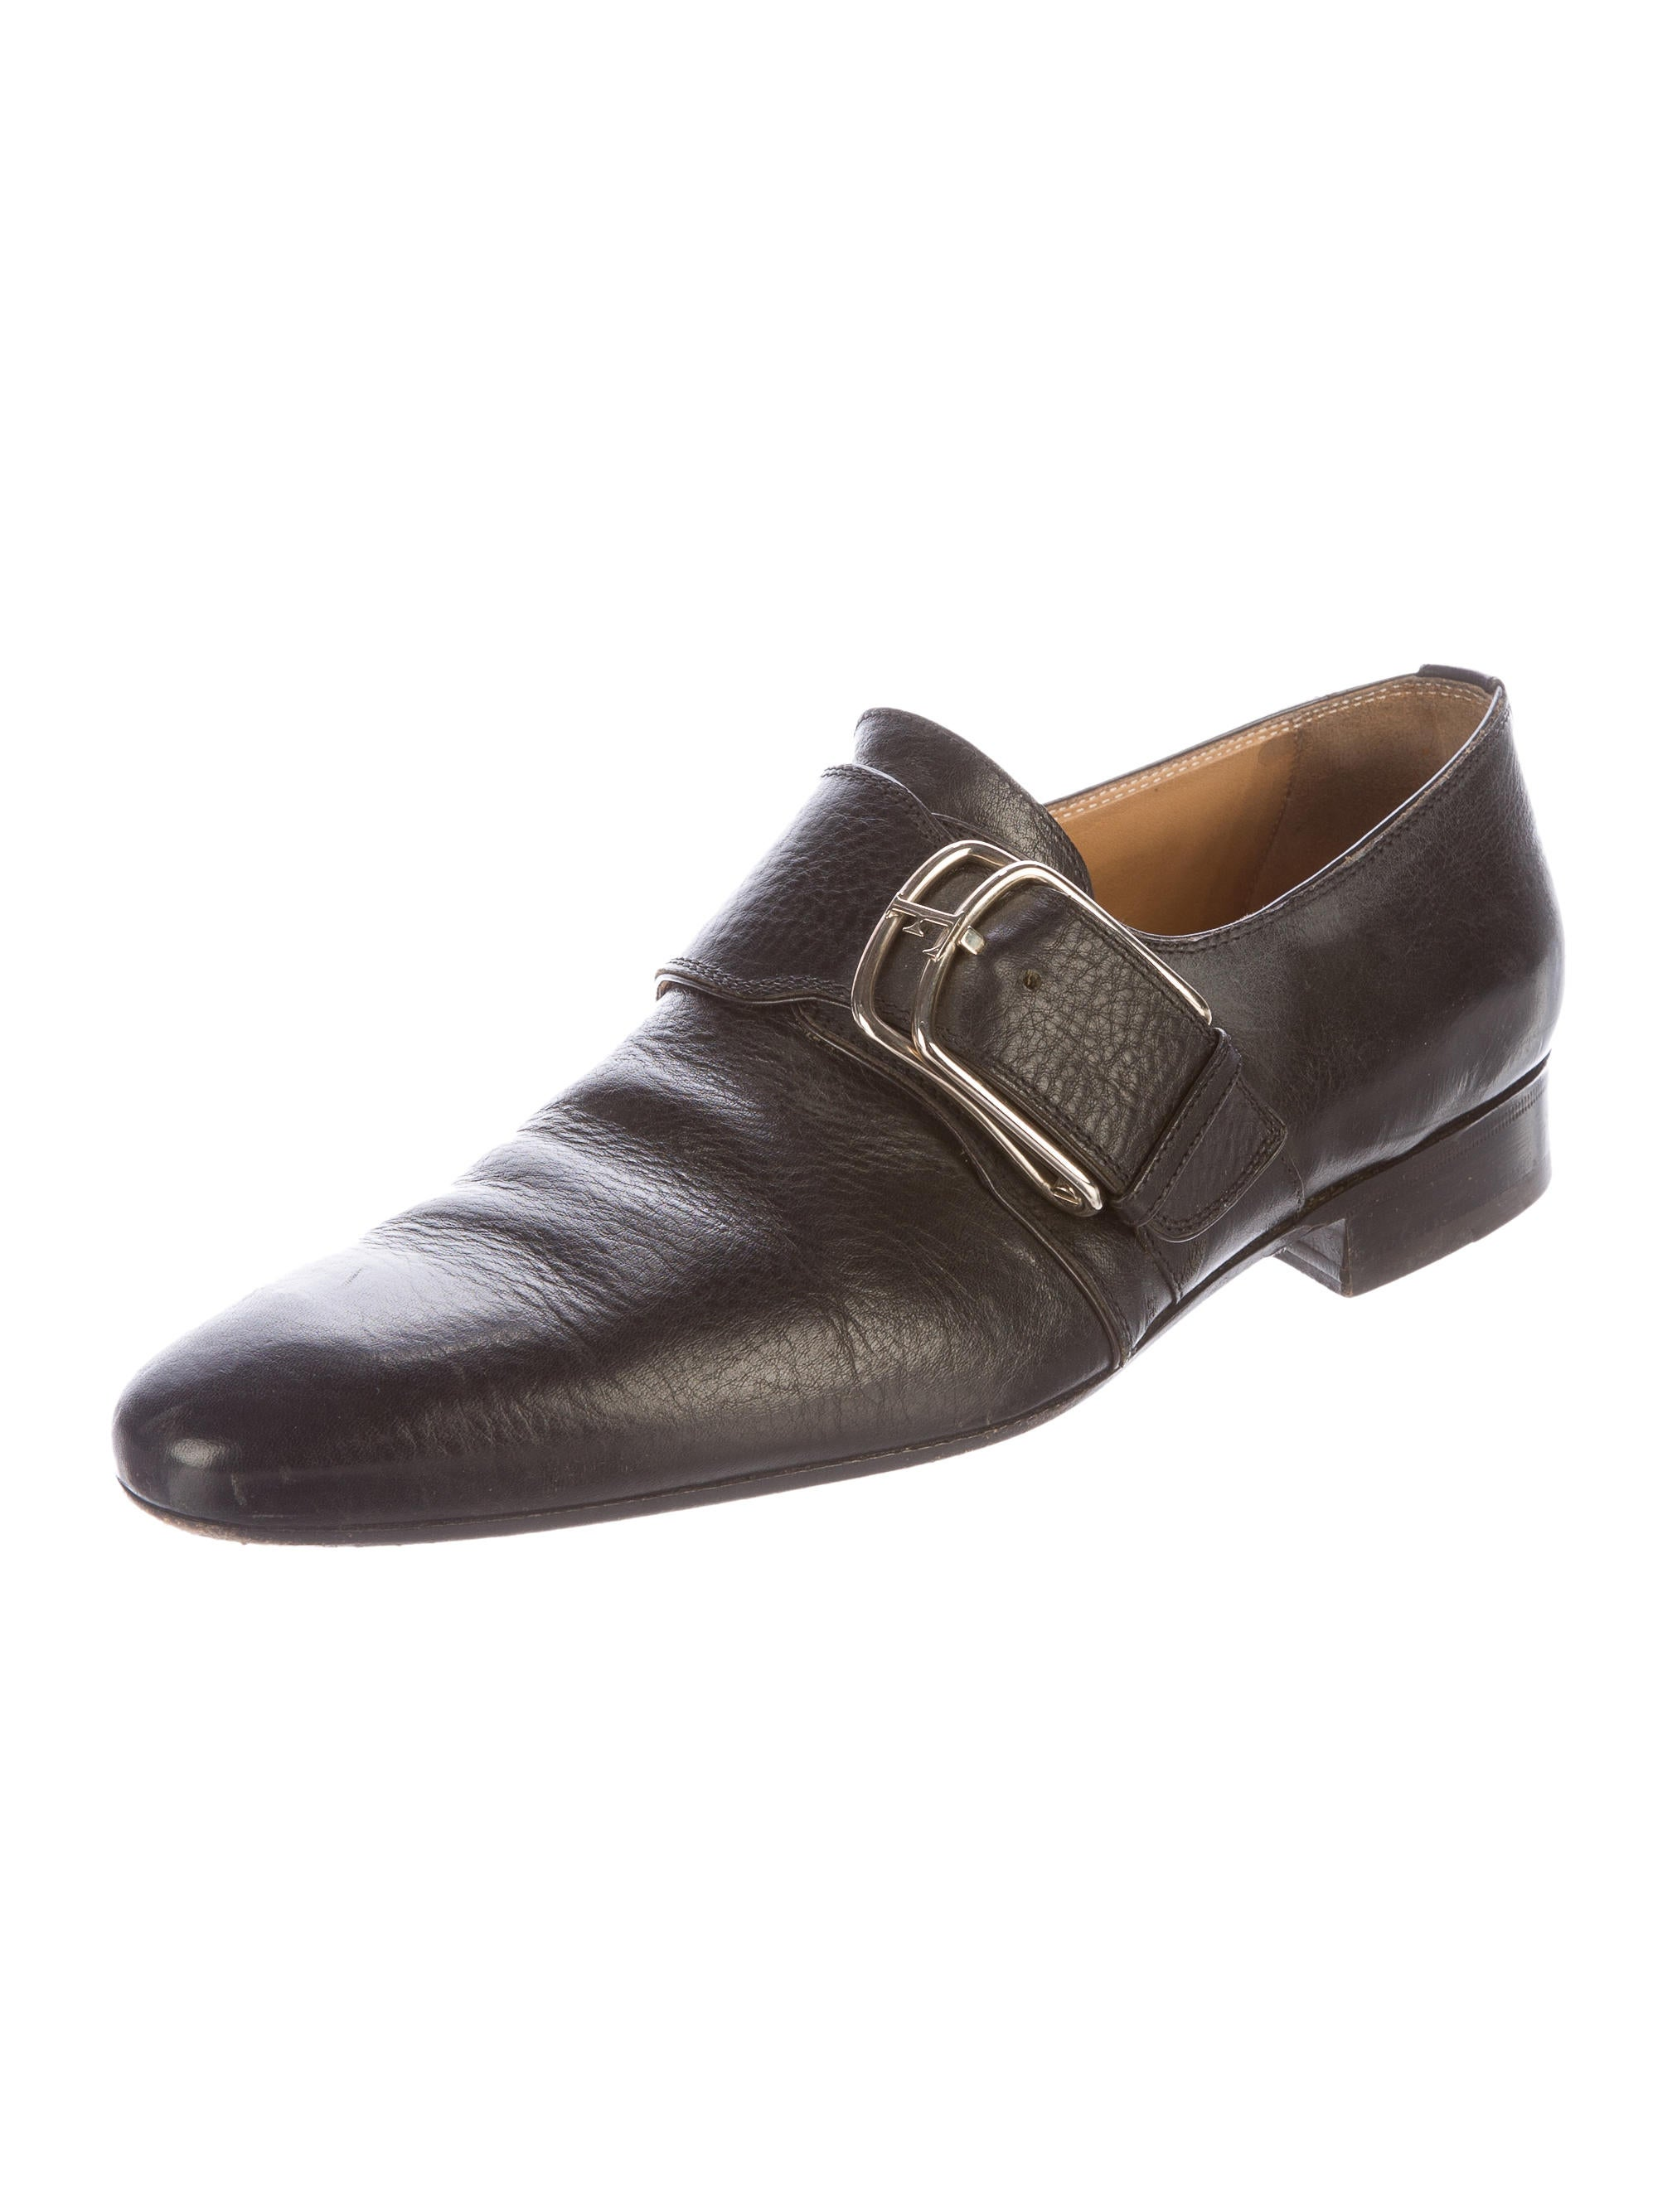 gianfranco ferre leather monk shoes shoes